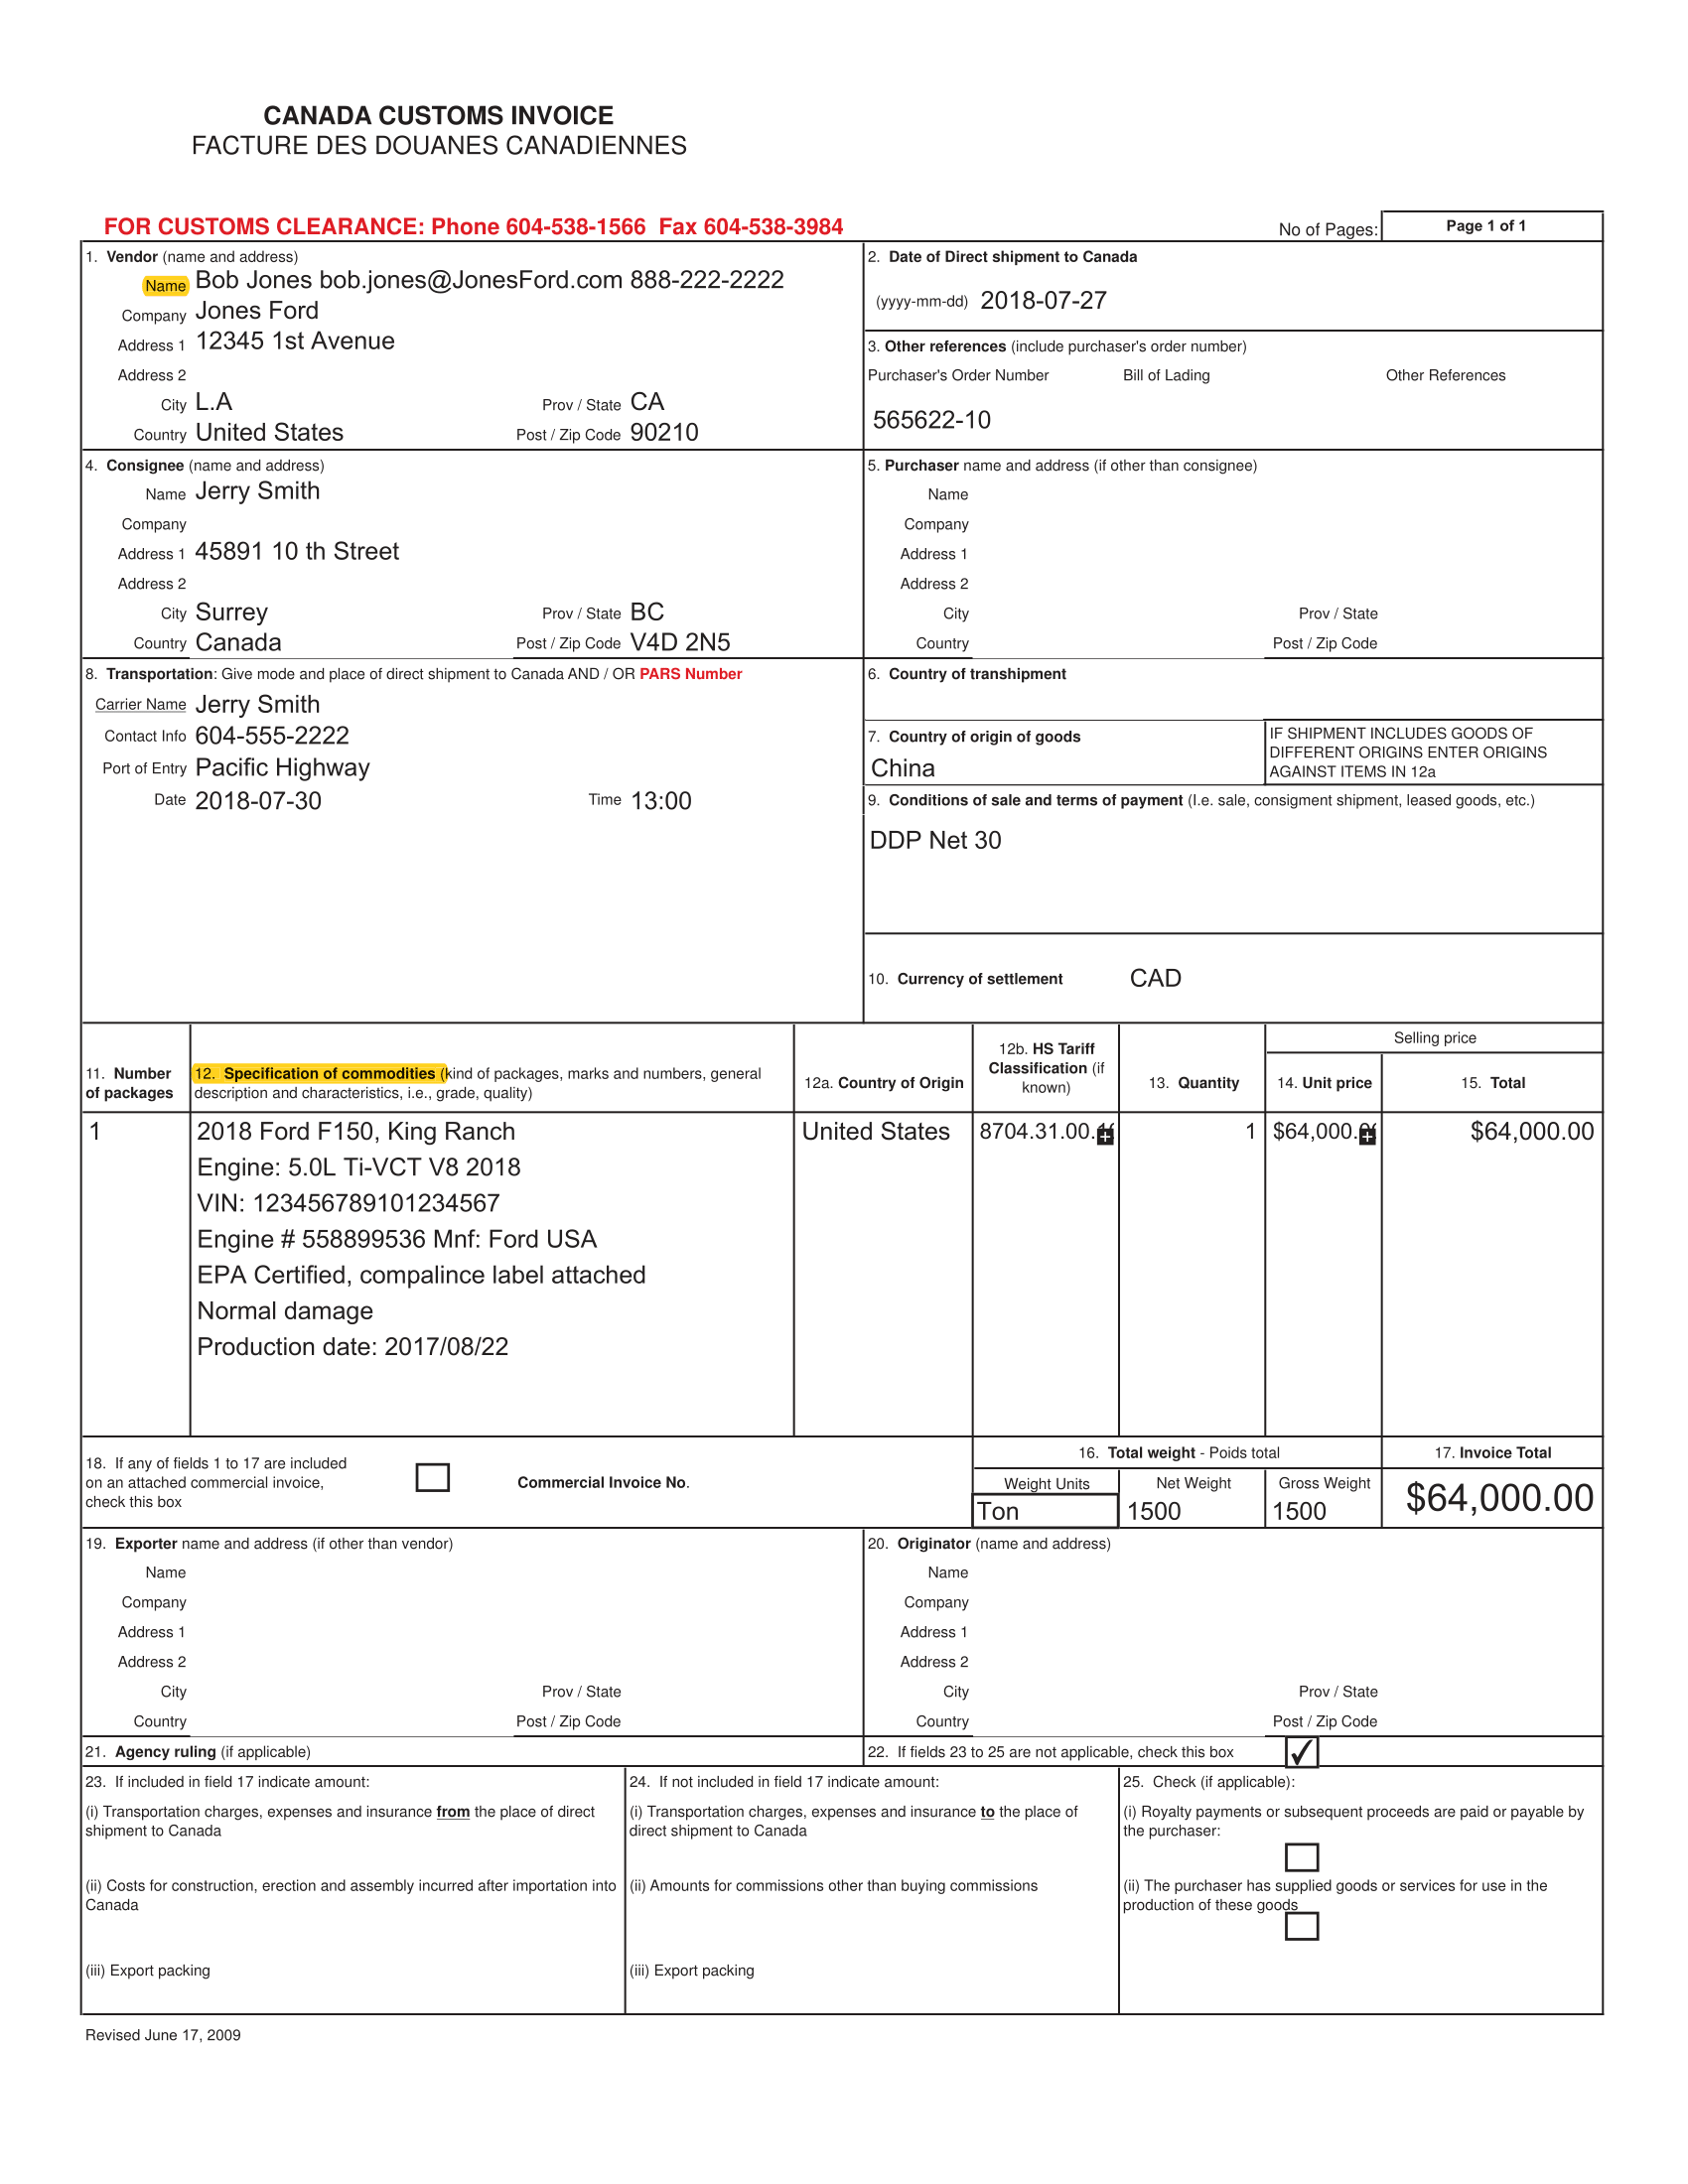 Canada Customs Invoice Example 3